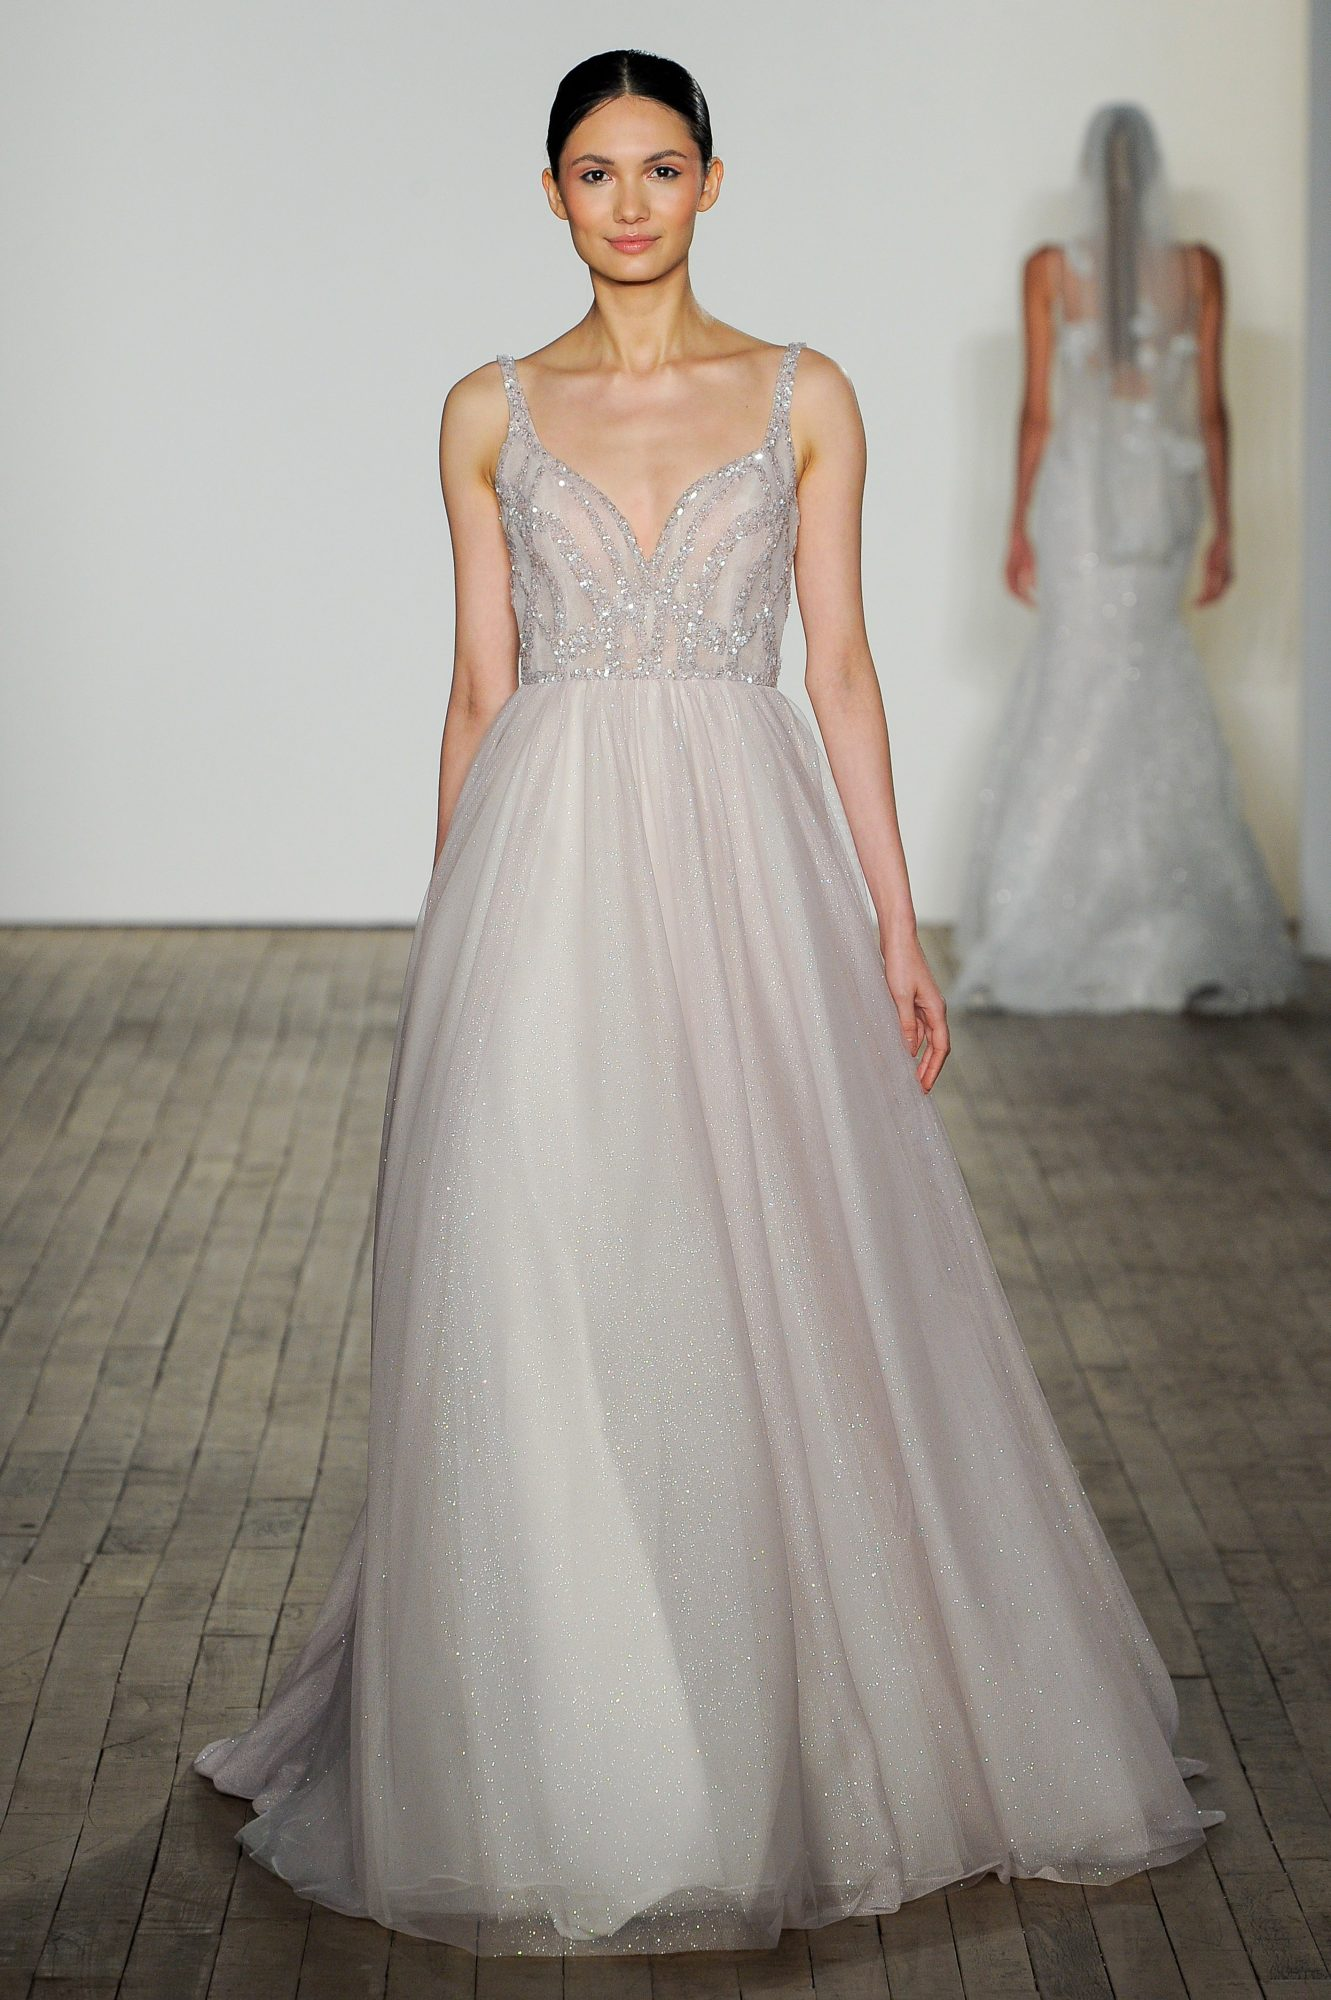 blush by hayley paige fall 2019 a-line glitter wedding dress